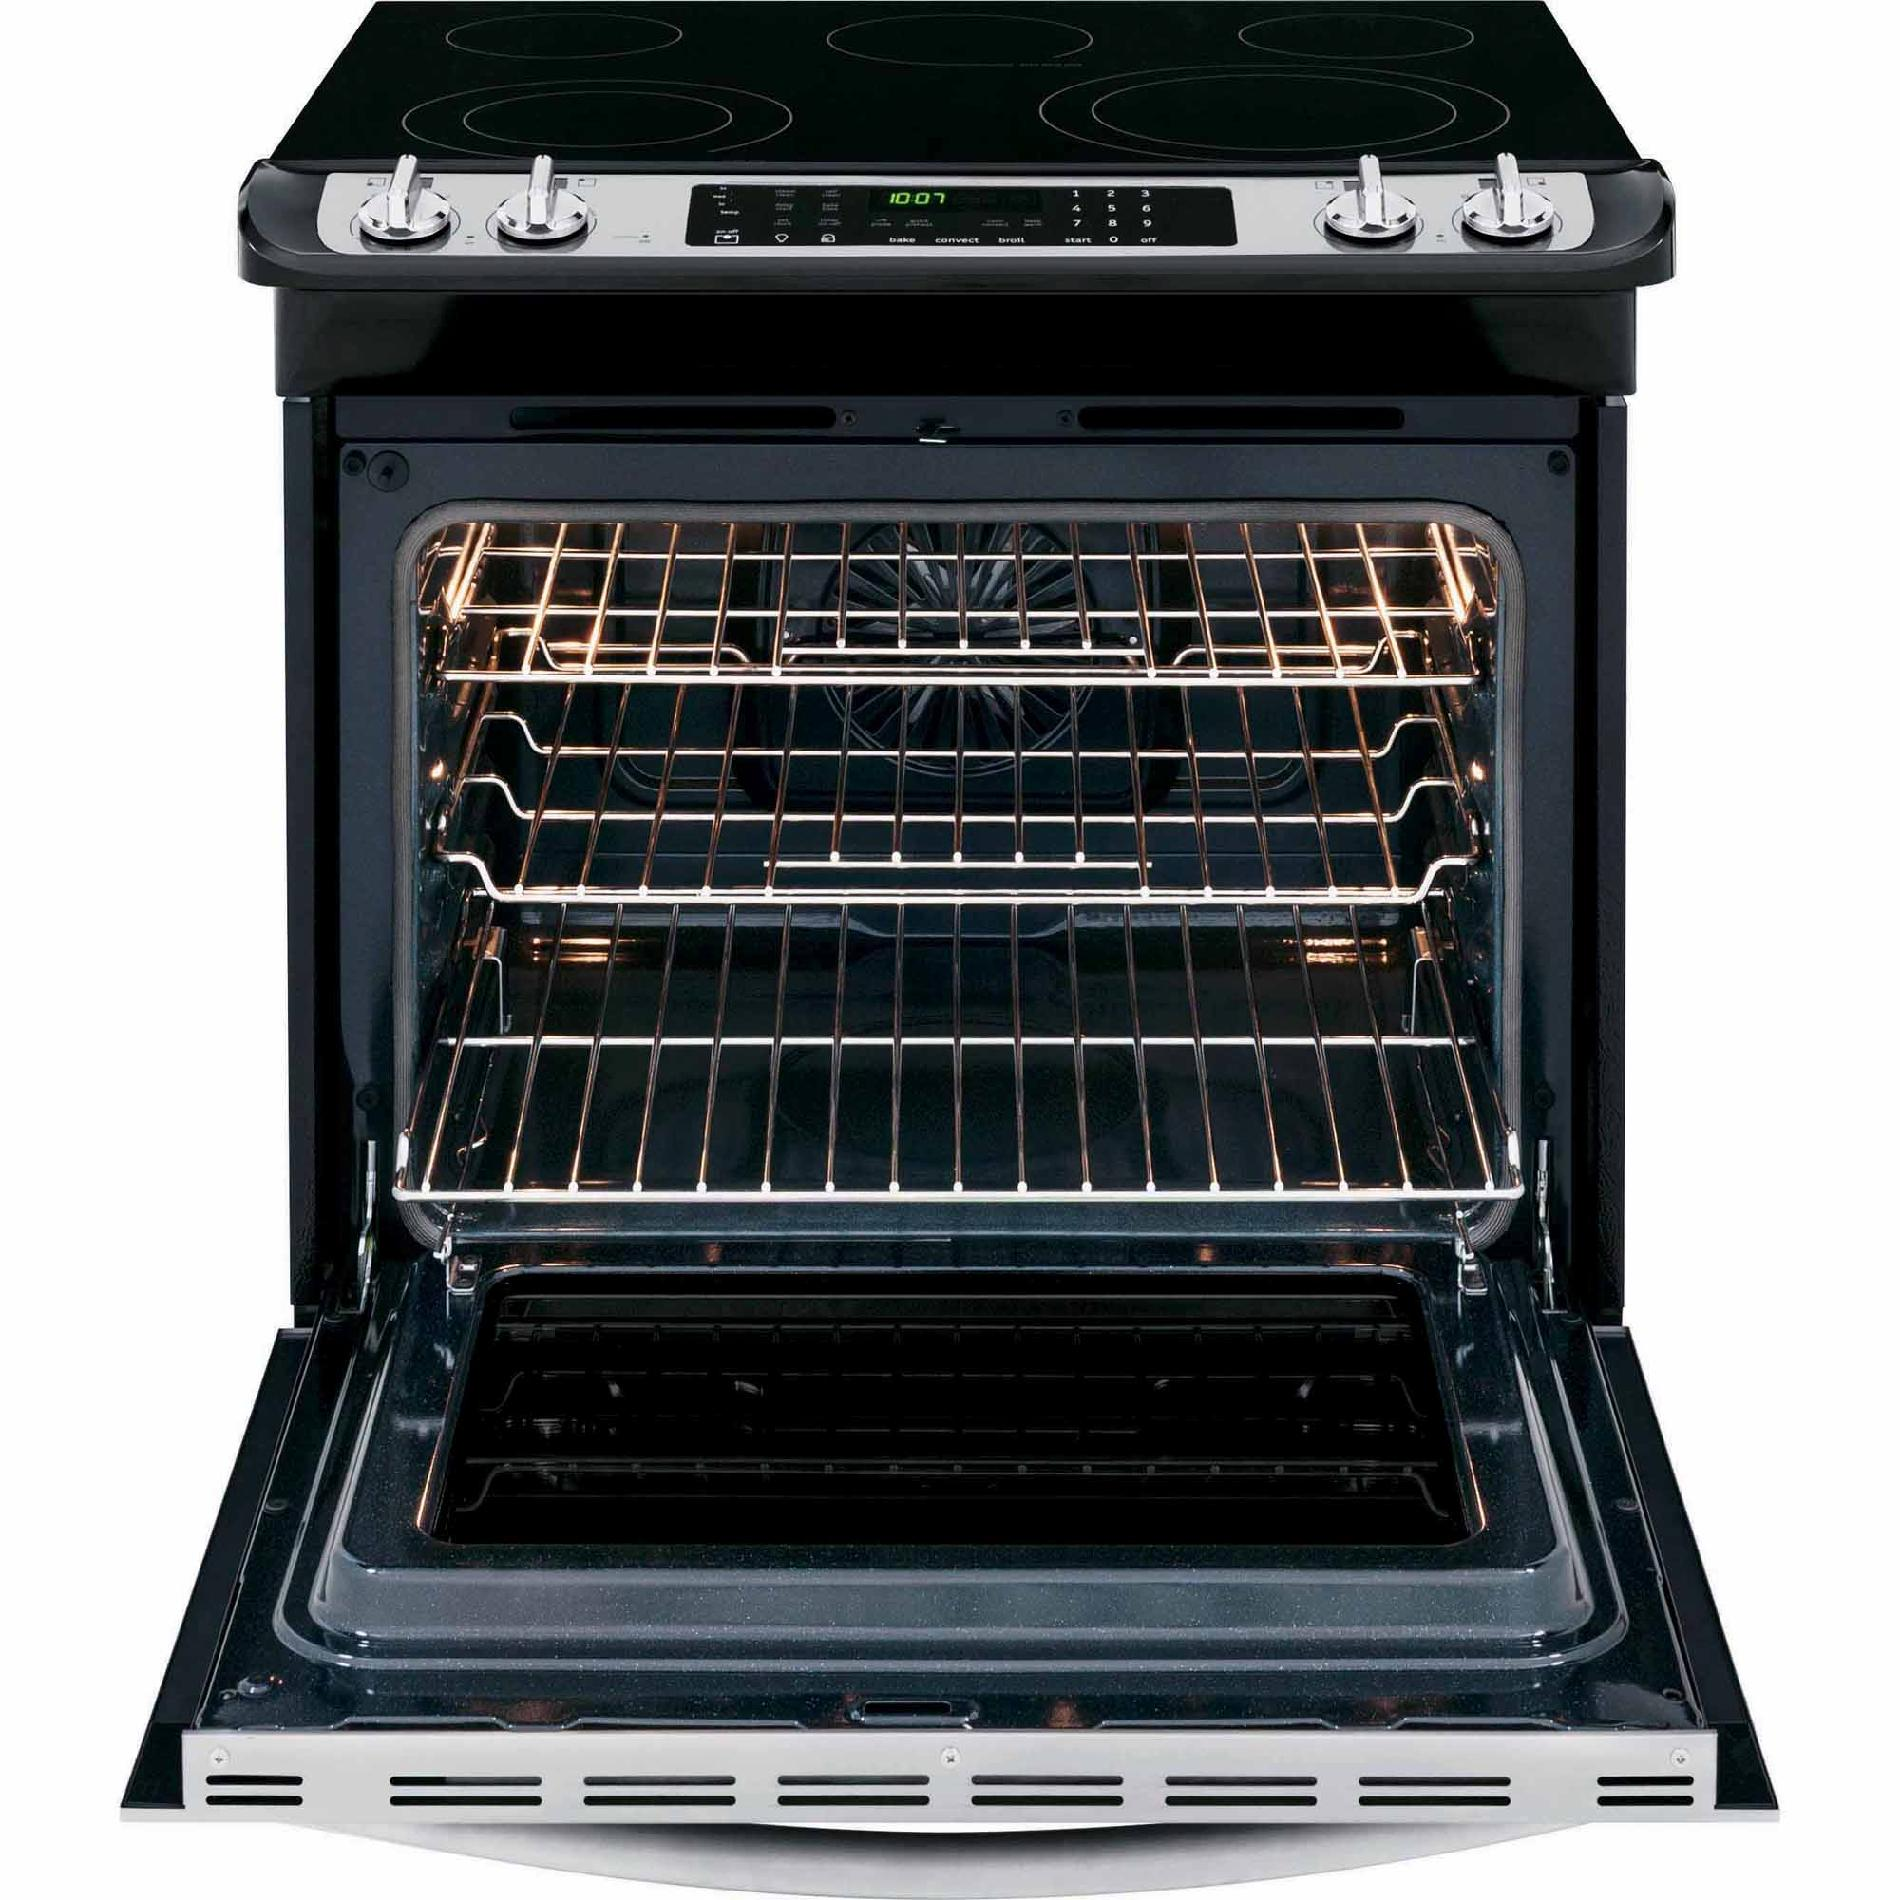 Frigidaire FGES3065PF Gallery 4.6 cu. ft. Slide-In Electric Range w/ Smudge-Proof™- Stainless Steel